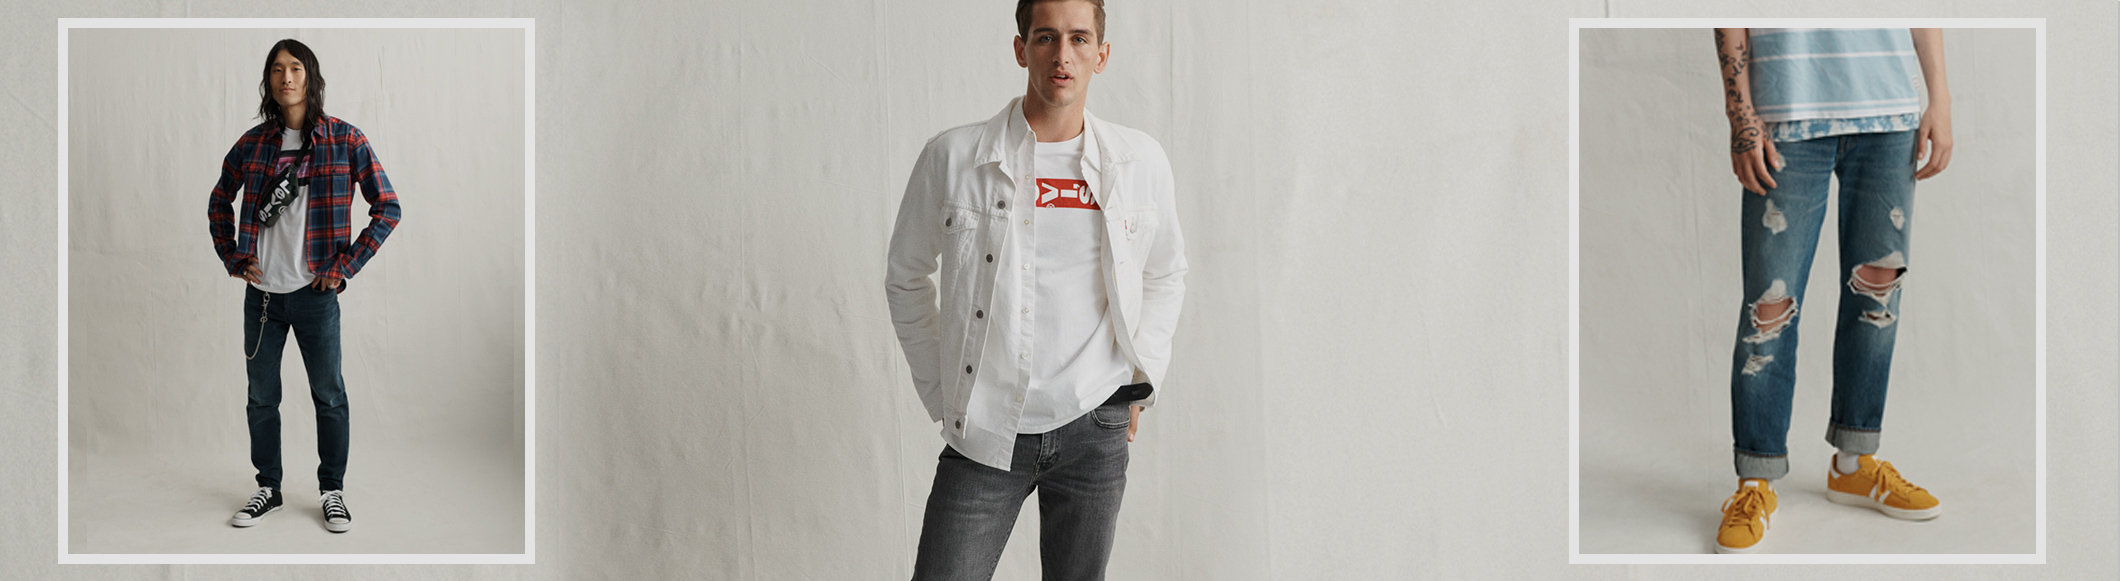 124c11e32a3 Men's Slim & Regular Tapered Jeans - Levi's® 502 | Levi's® US